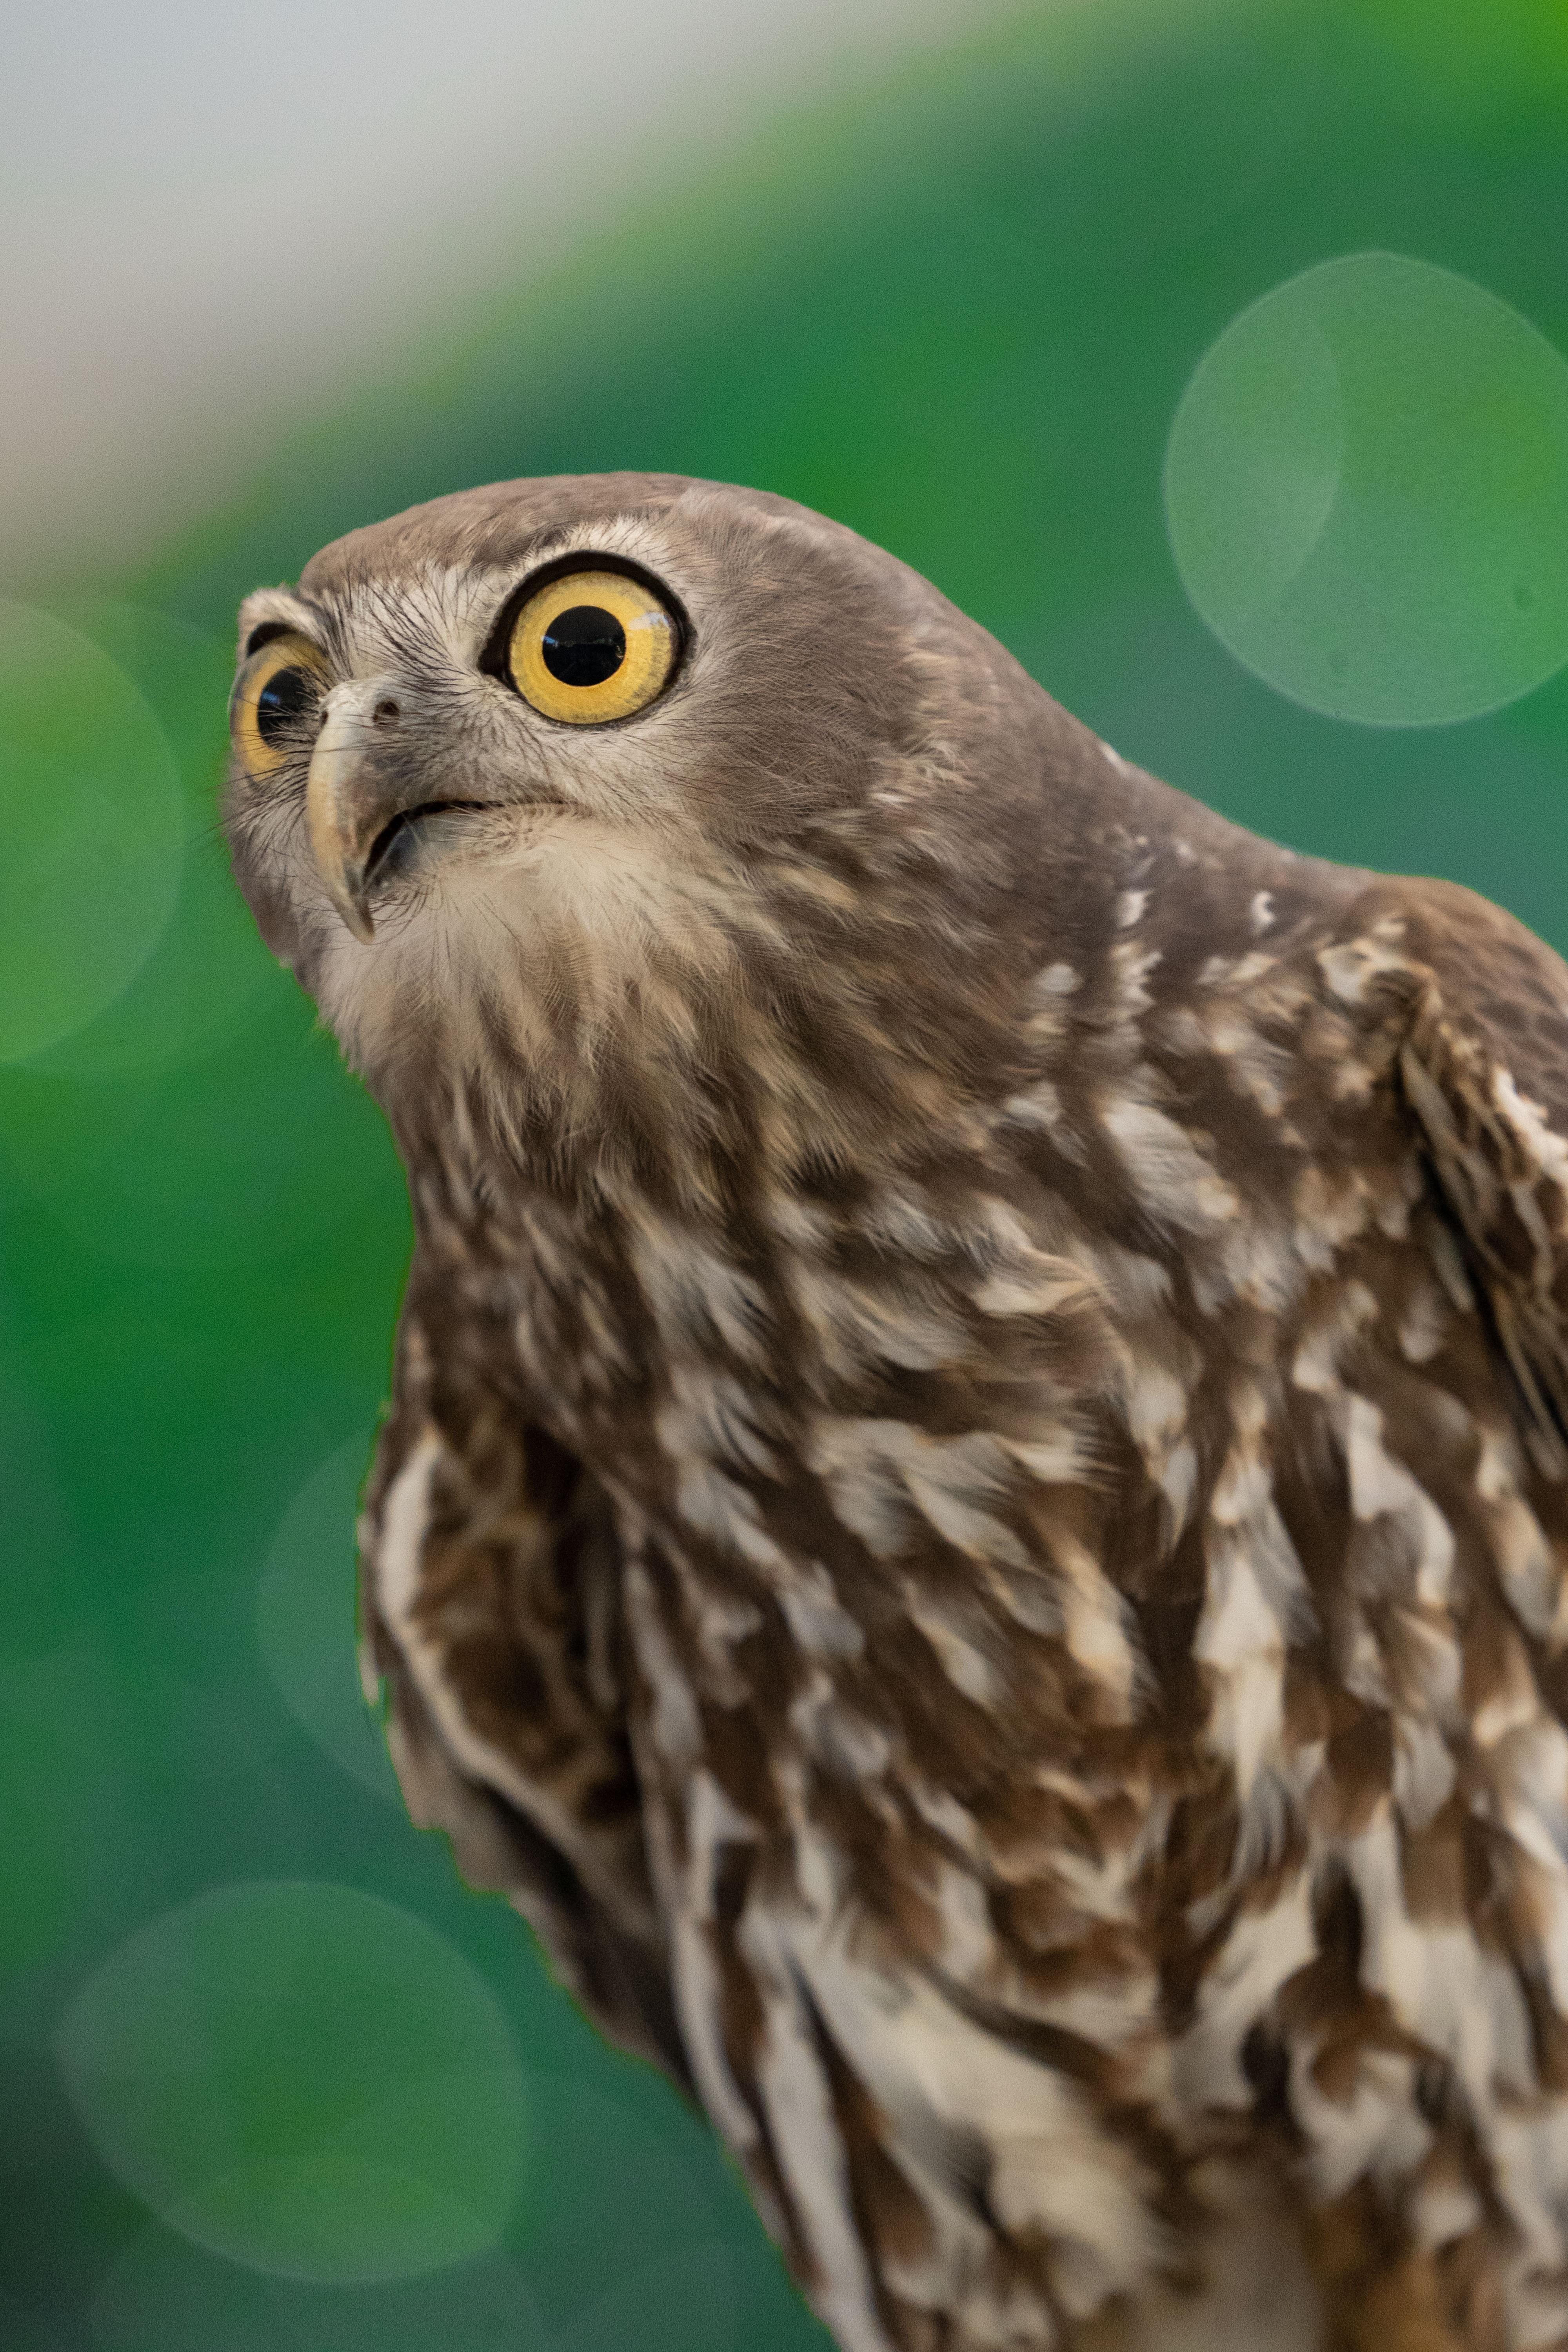 68645 download wallpaper Animals, Hawk, Bird, Funny, Predator screensavers and pictures for free